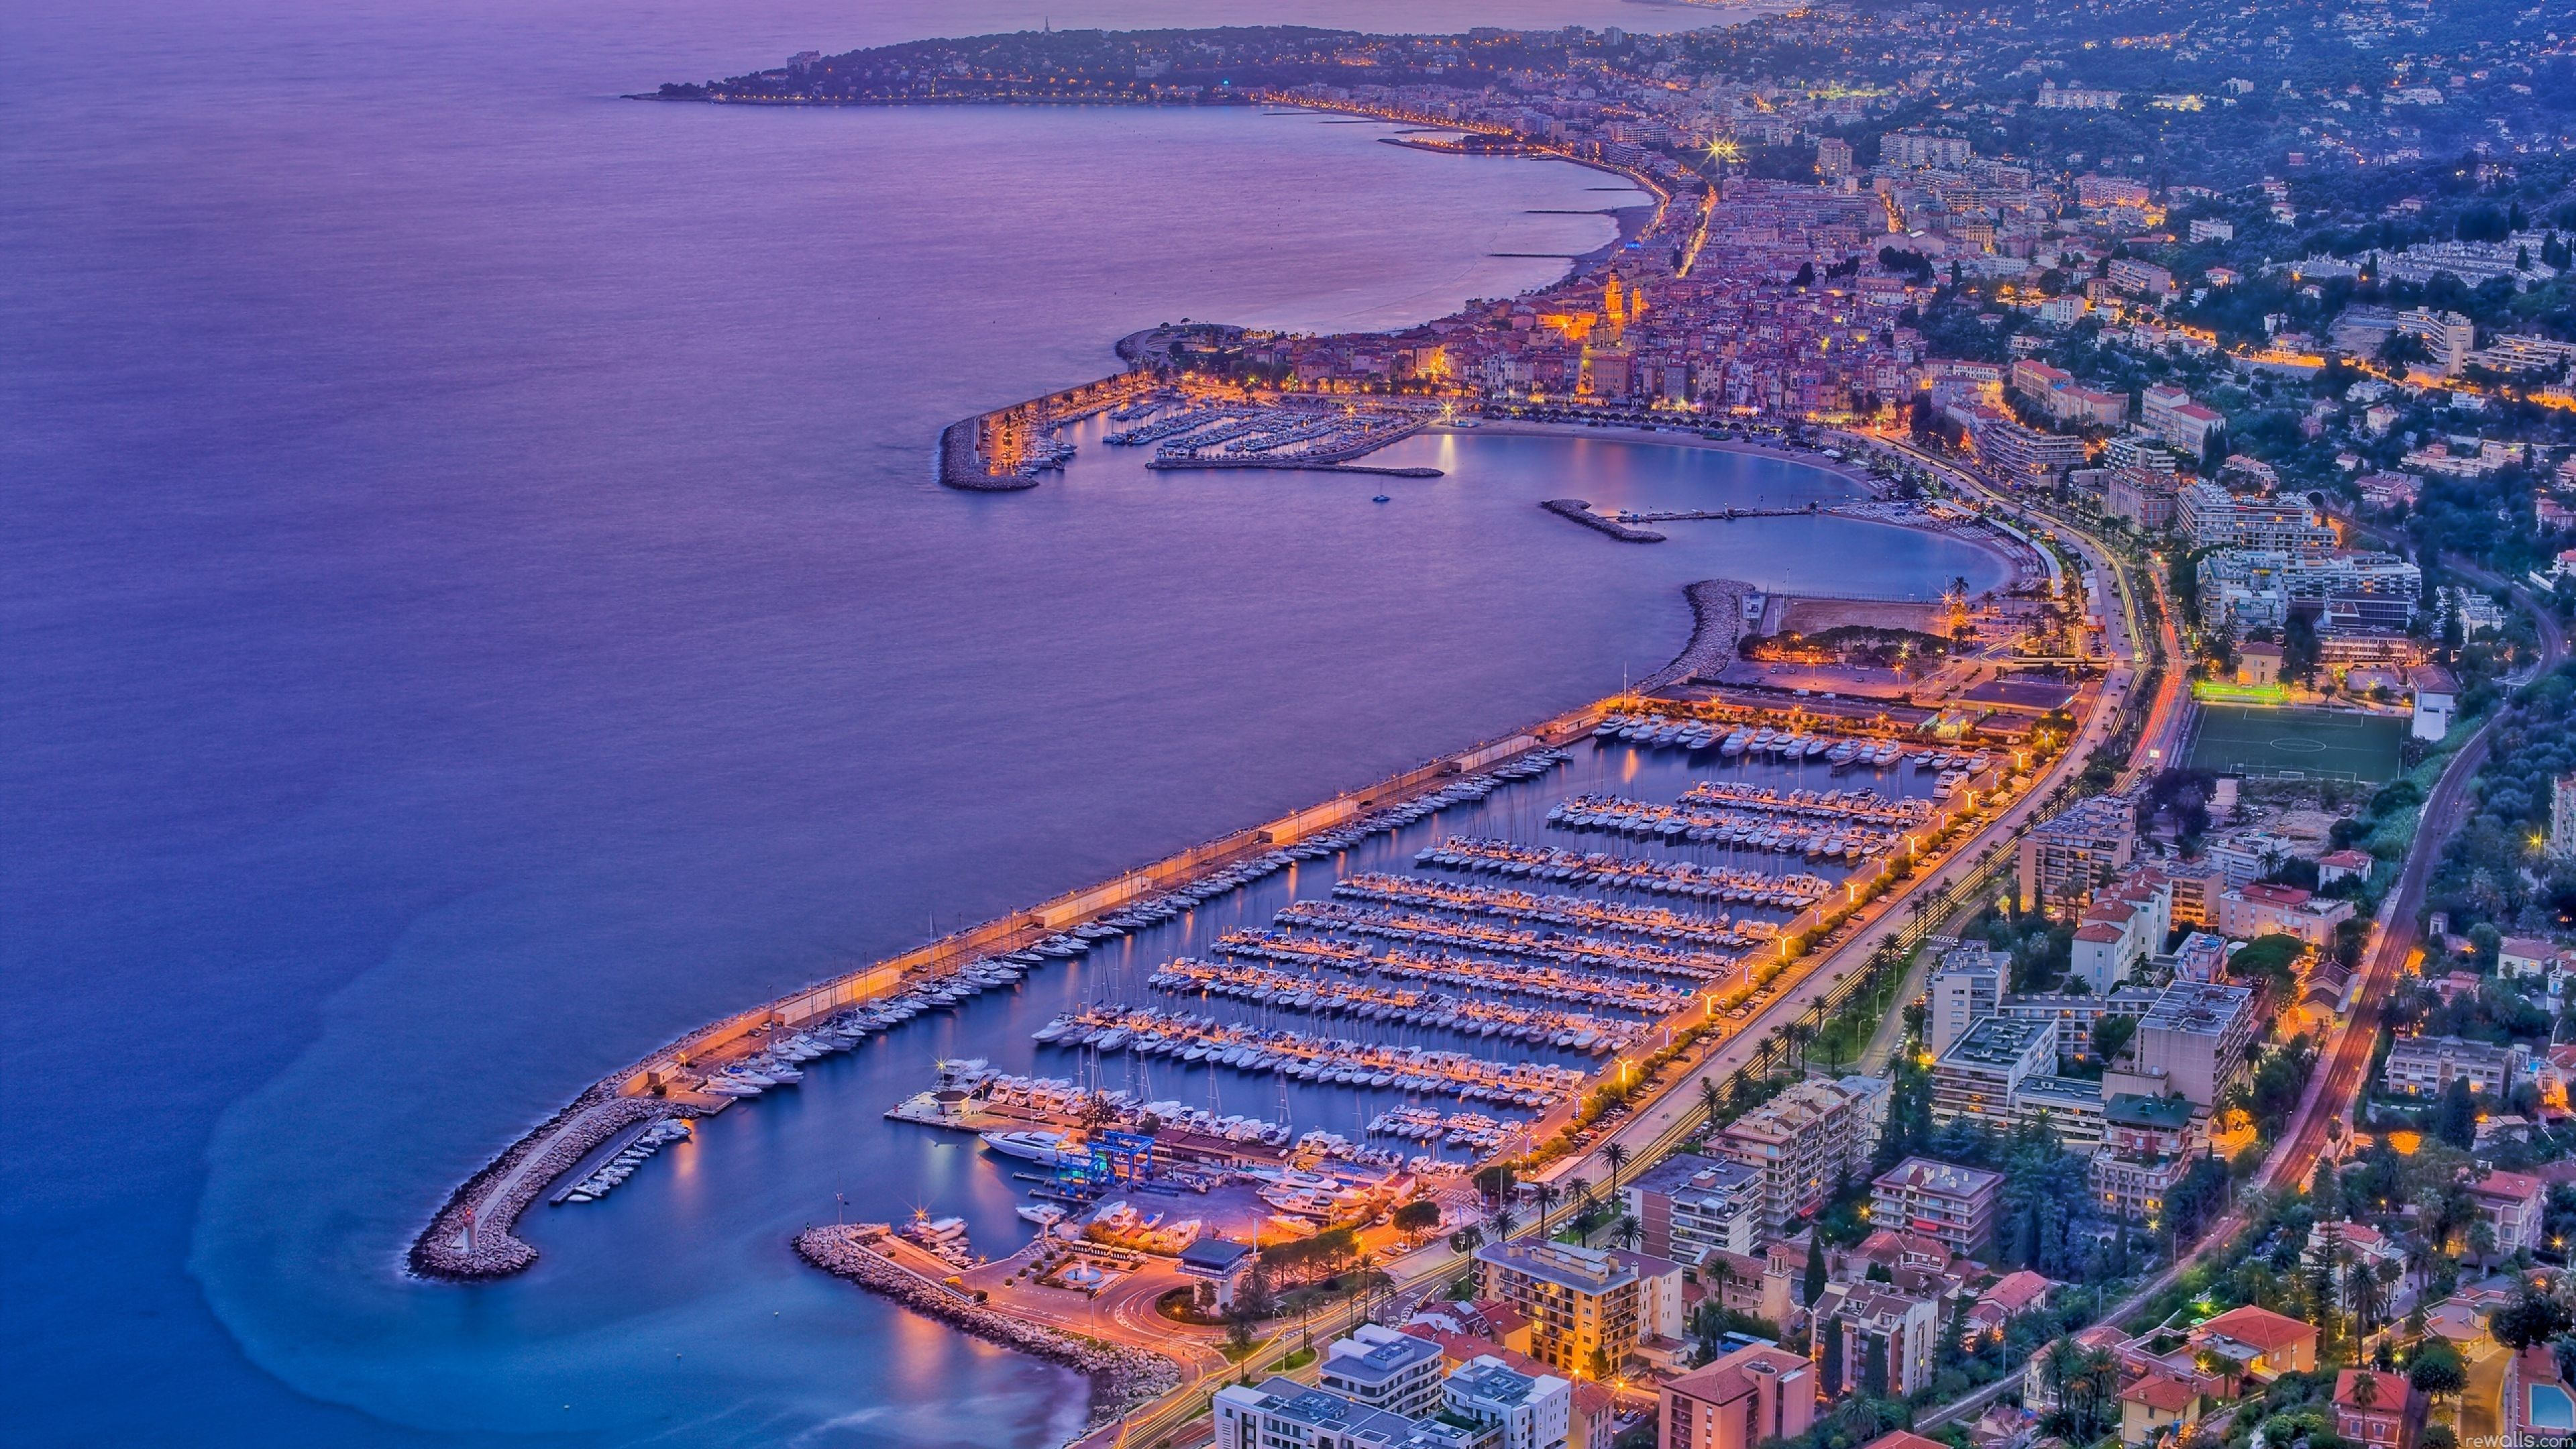 Menton France Aerial View 4k Ultra Hd Wallpaper